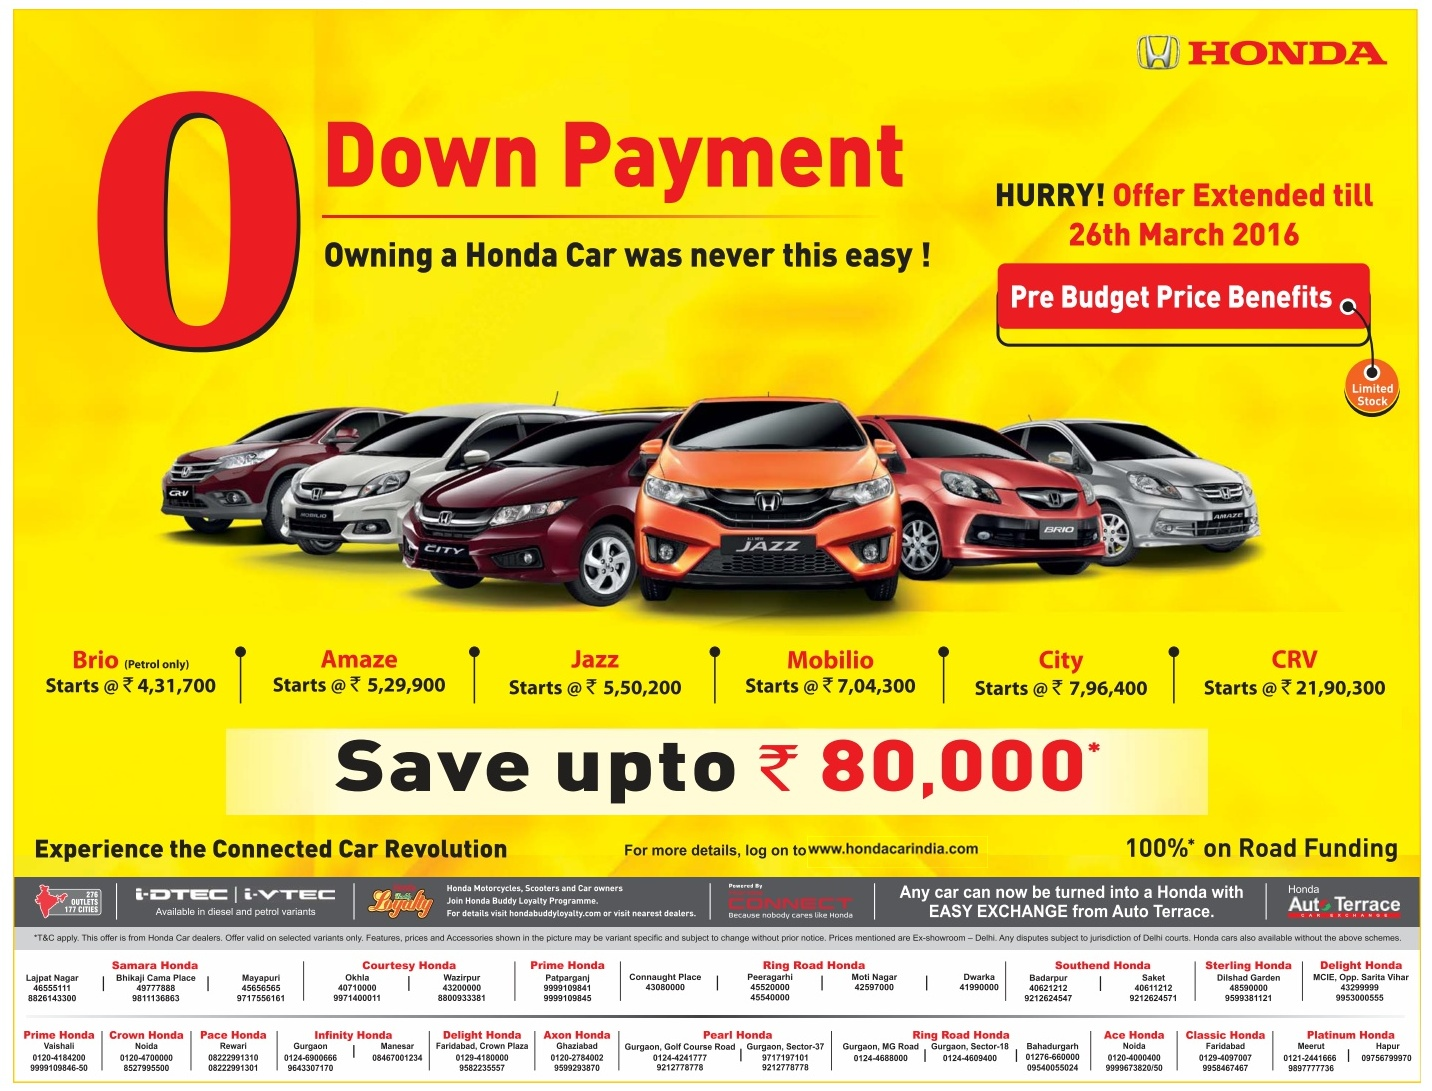 Never before offer on Honda Cars | Zero down payment on Honda cars | March 2016 discount offers | Holi festive offer.